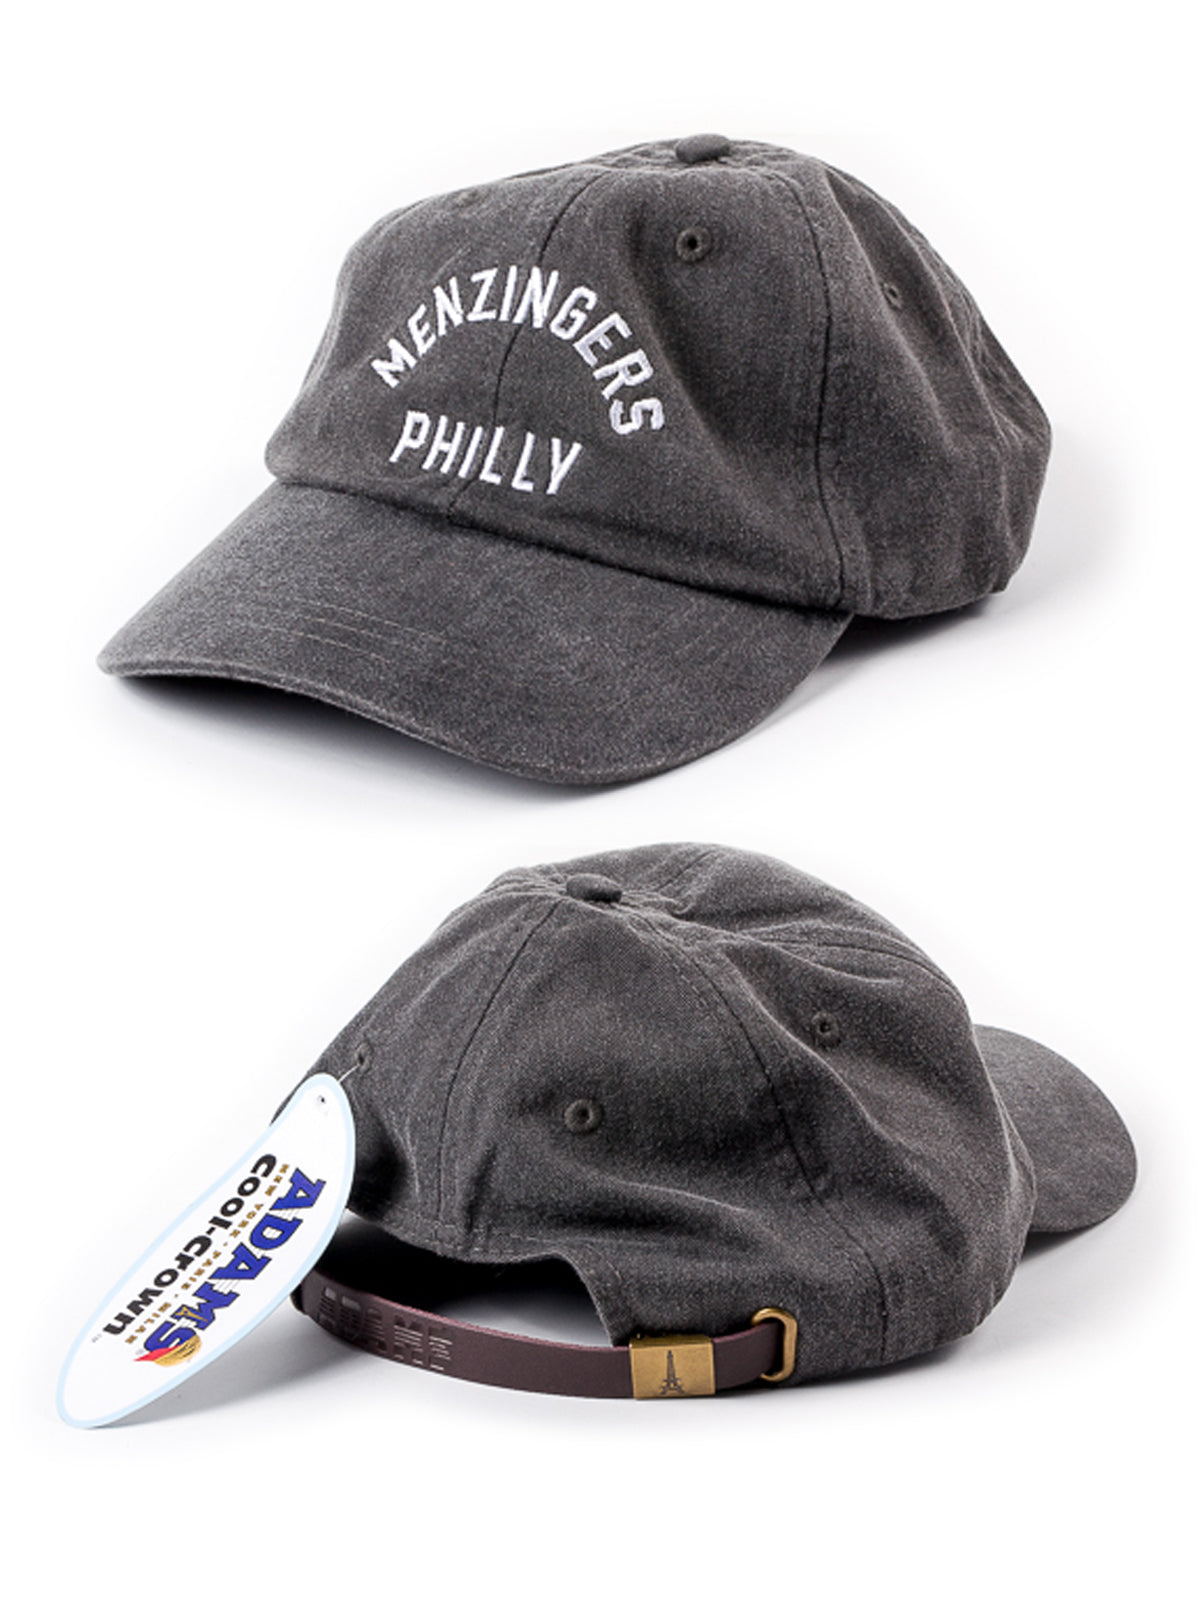 The Menzingers - Philly Dad Hat